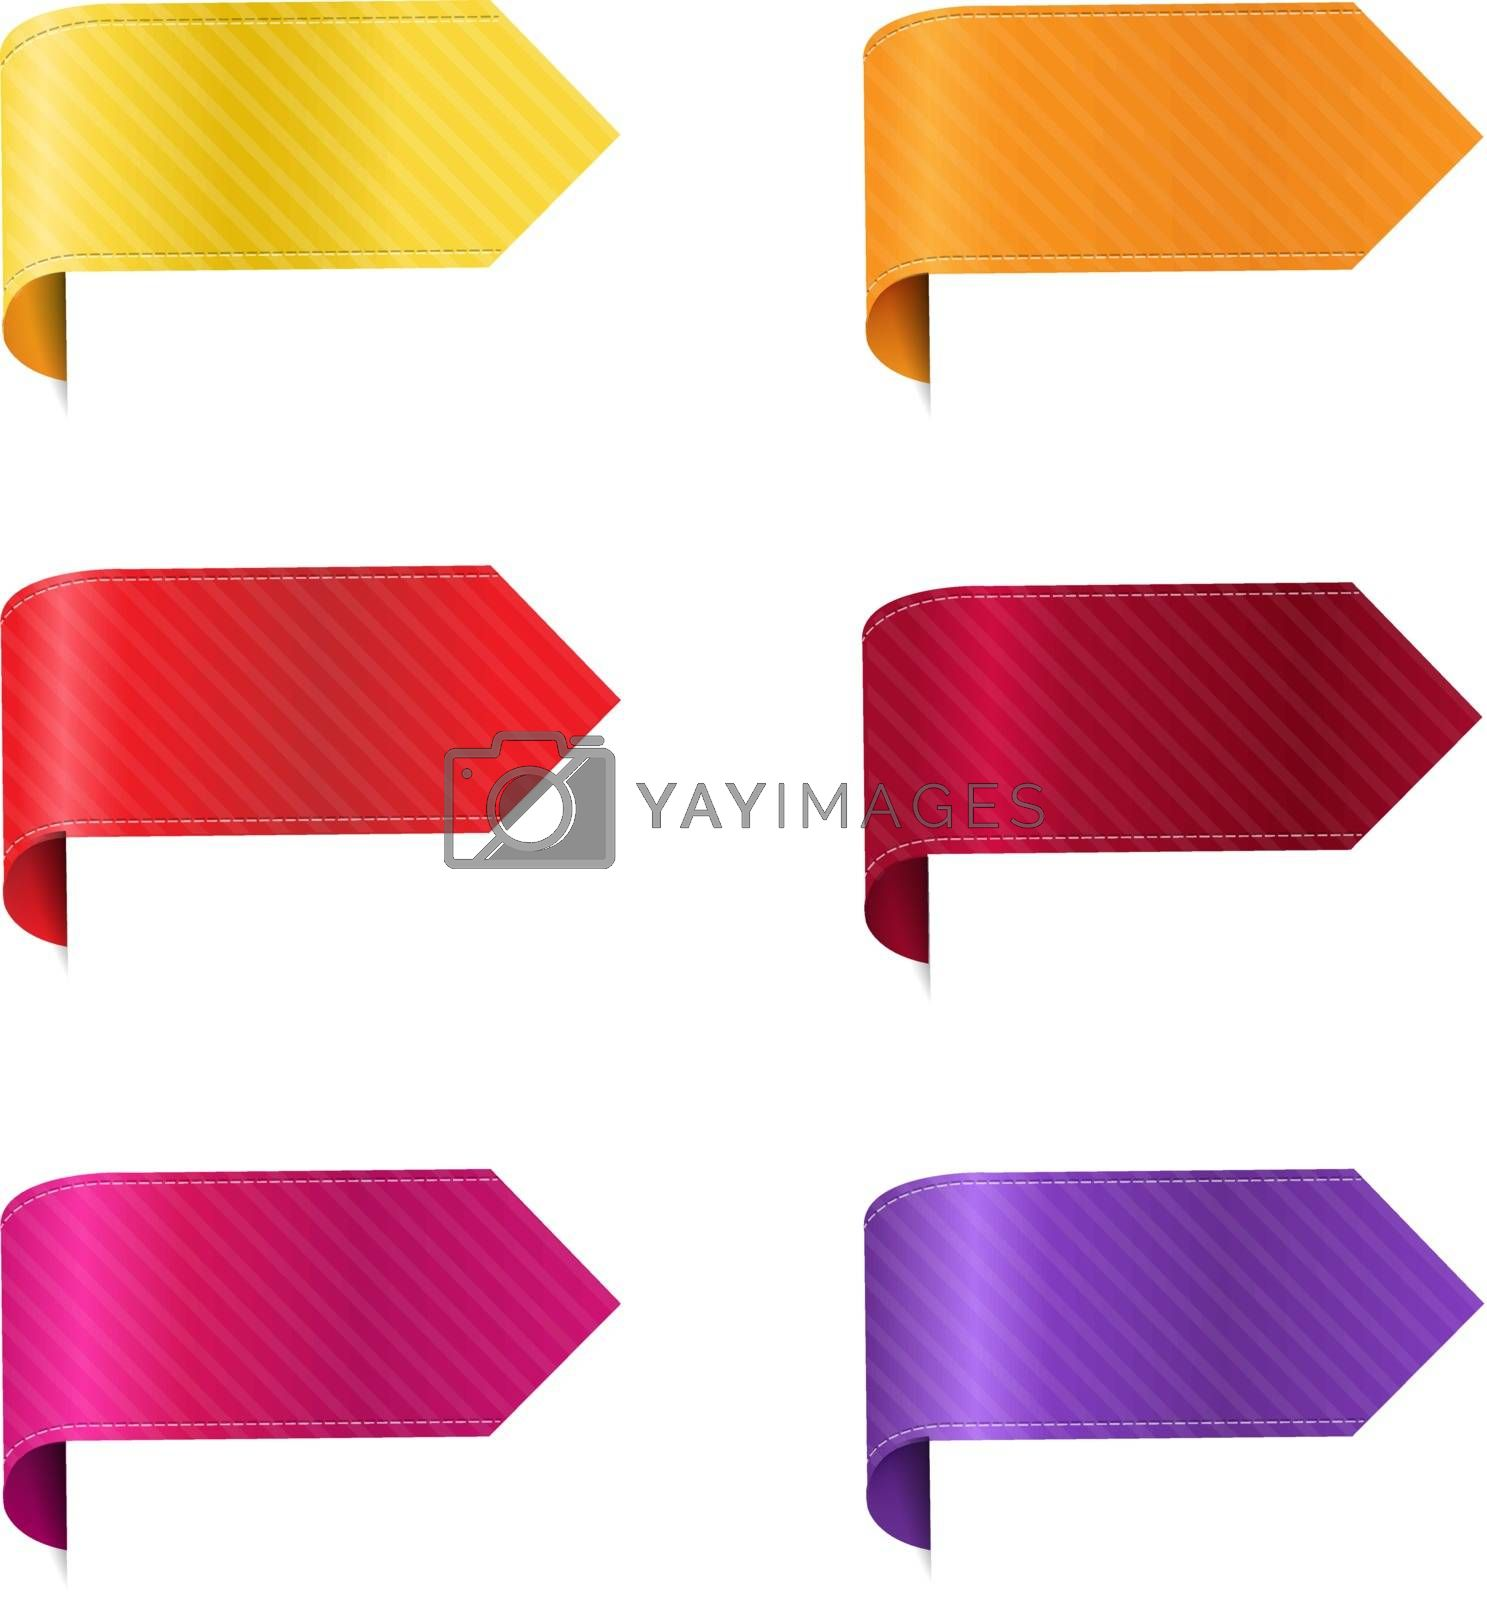 Silk Colorful Ribbon Set Isolated With White Background With Gradient Mesh, Vector Illustration